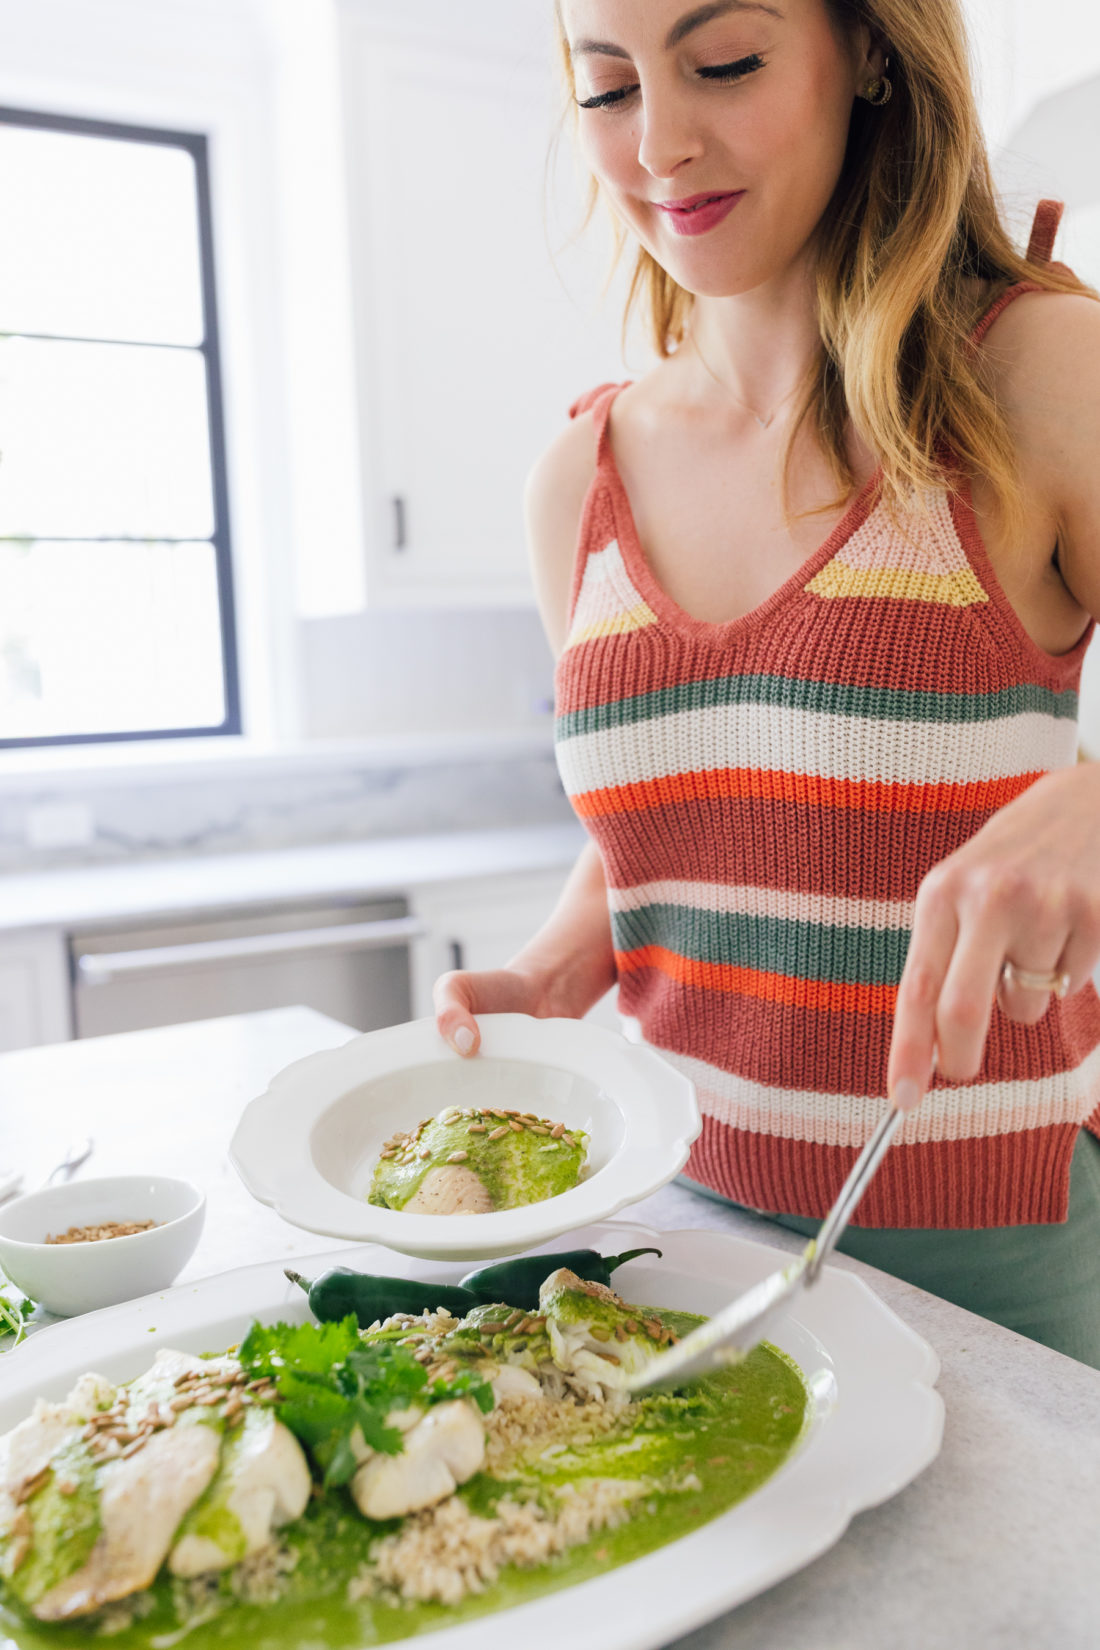 Eva Amurri Martino serves herself some of her Buster's Famous Green Fish